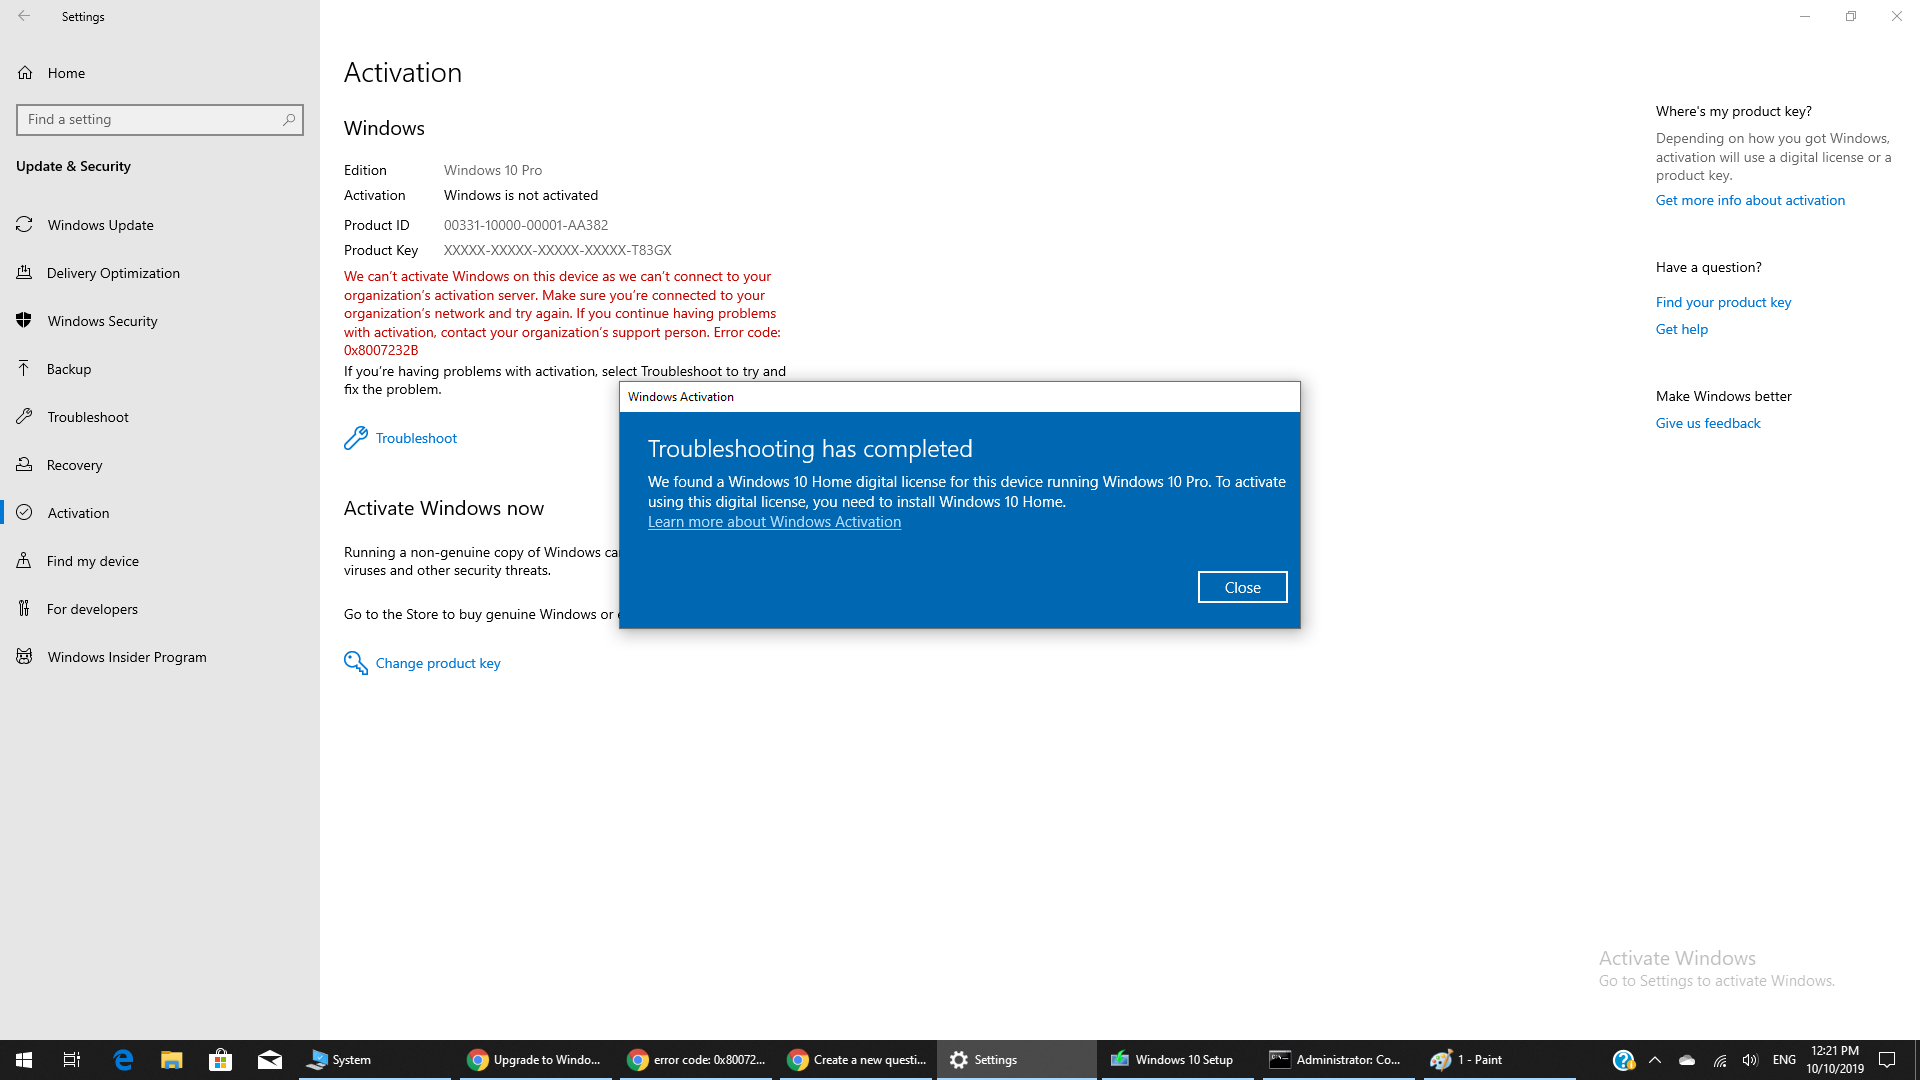 I Have used windows recovery  and reinstall  windows 10 after recover using recovery now  I... f1ac2cf3-f2ad-4ae7-9a2c-38178c34ad12?upload=true.png